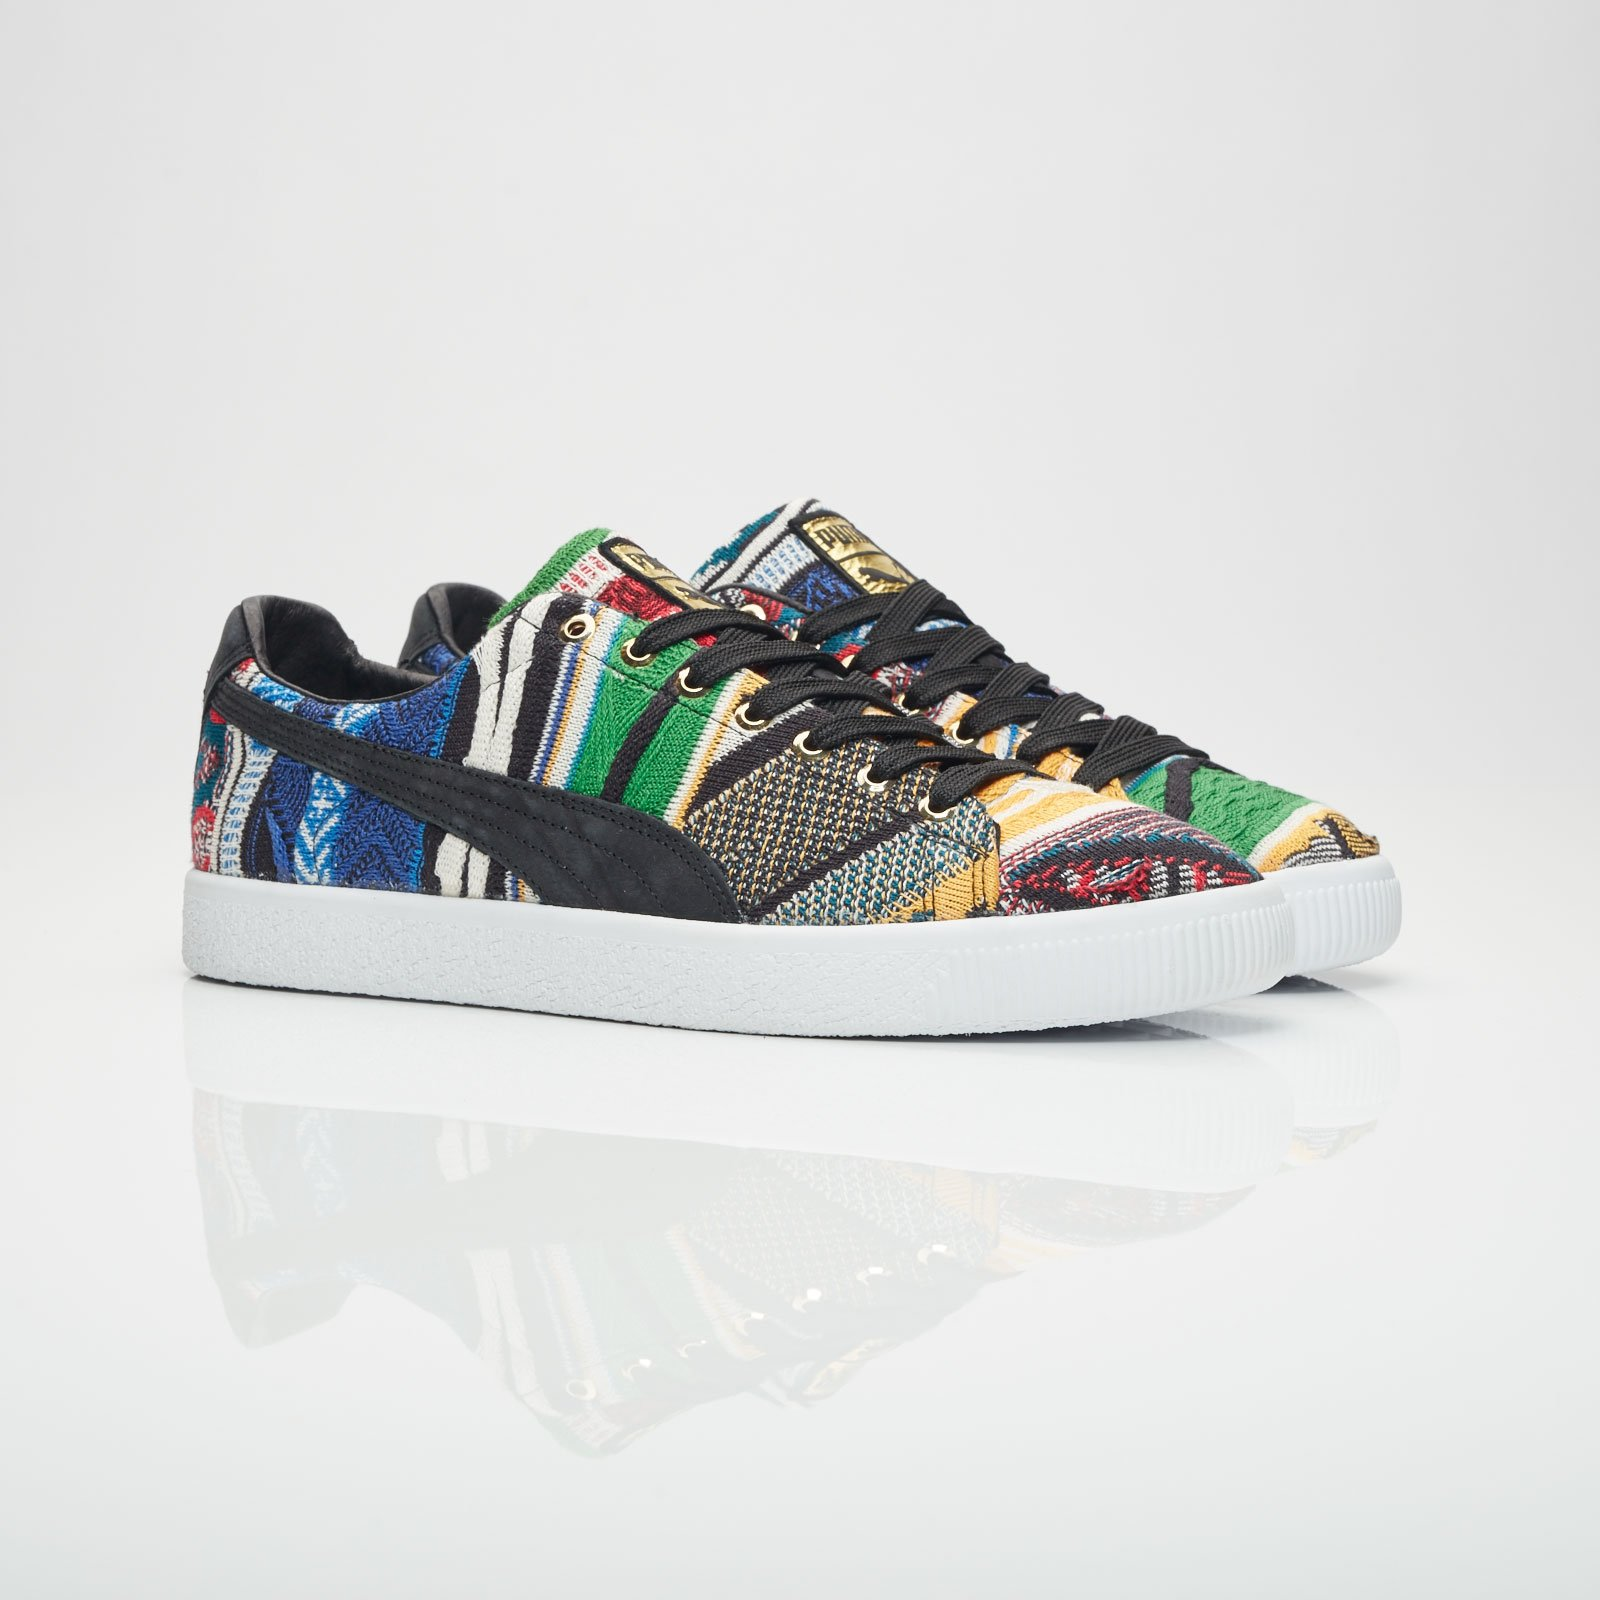 quality design 8d466 37324 Puma Clyde Coogi - 364907-01 - Sneakersnstuff | sneakers ...